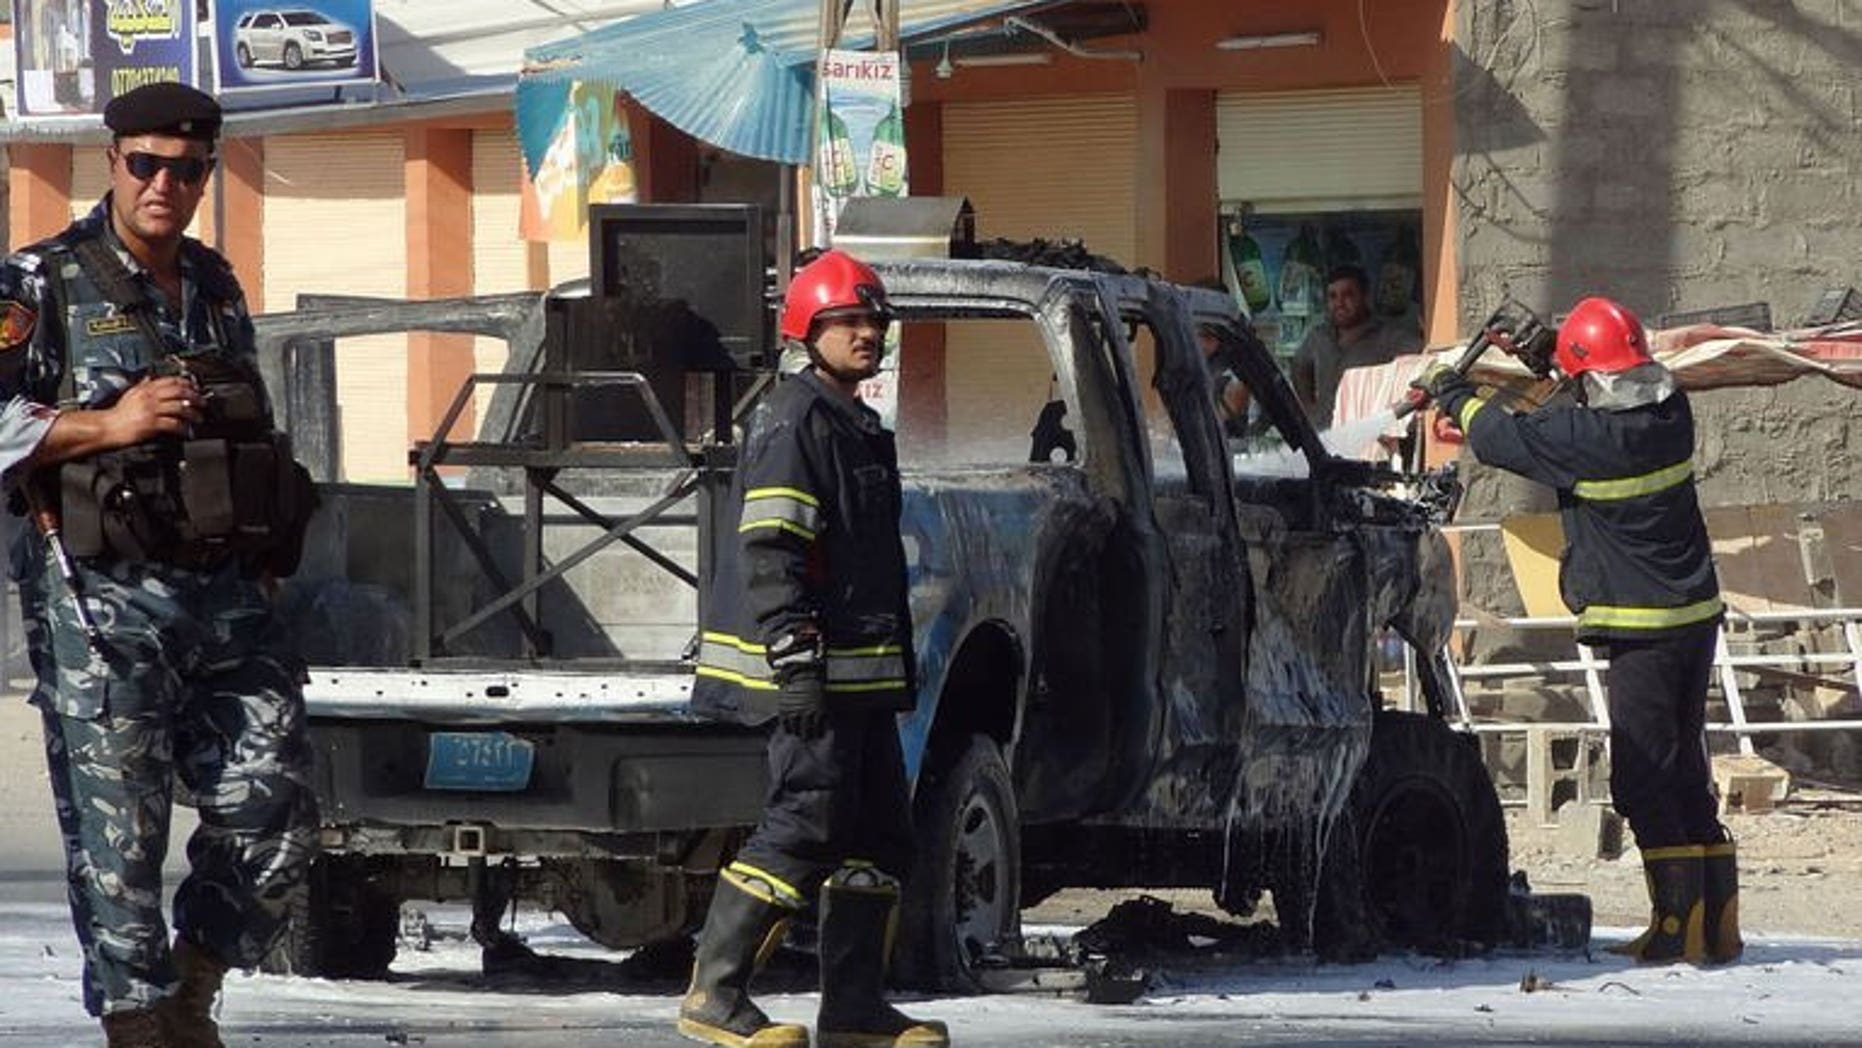 Iraqi firefighters extinguish fire from a vehicle at the site of an explosion near the northern city of Kirkuk on July 25, 2013. Bombs exploded near shops and cafes in Iraq on Thursday night, killing at least 17 people, officials said.